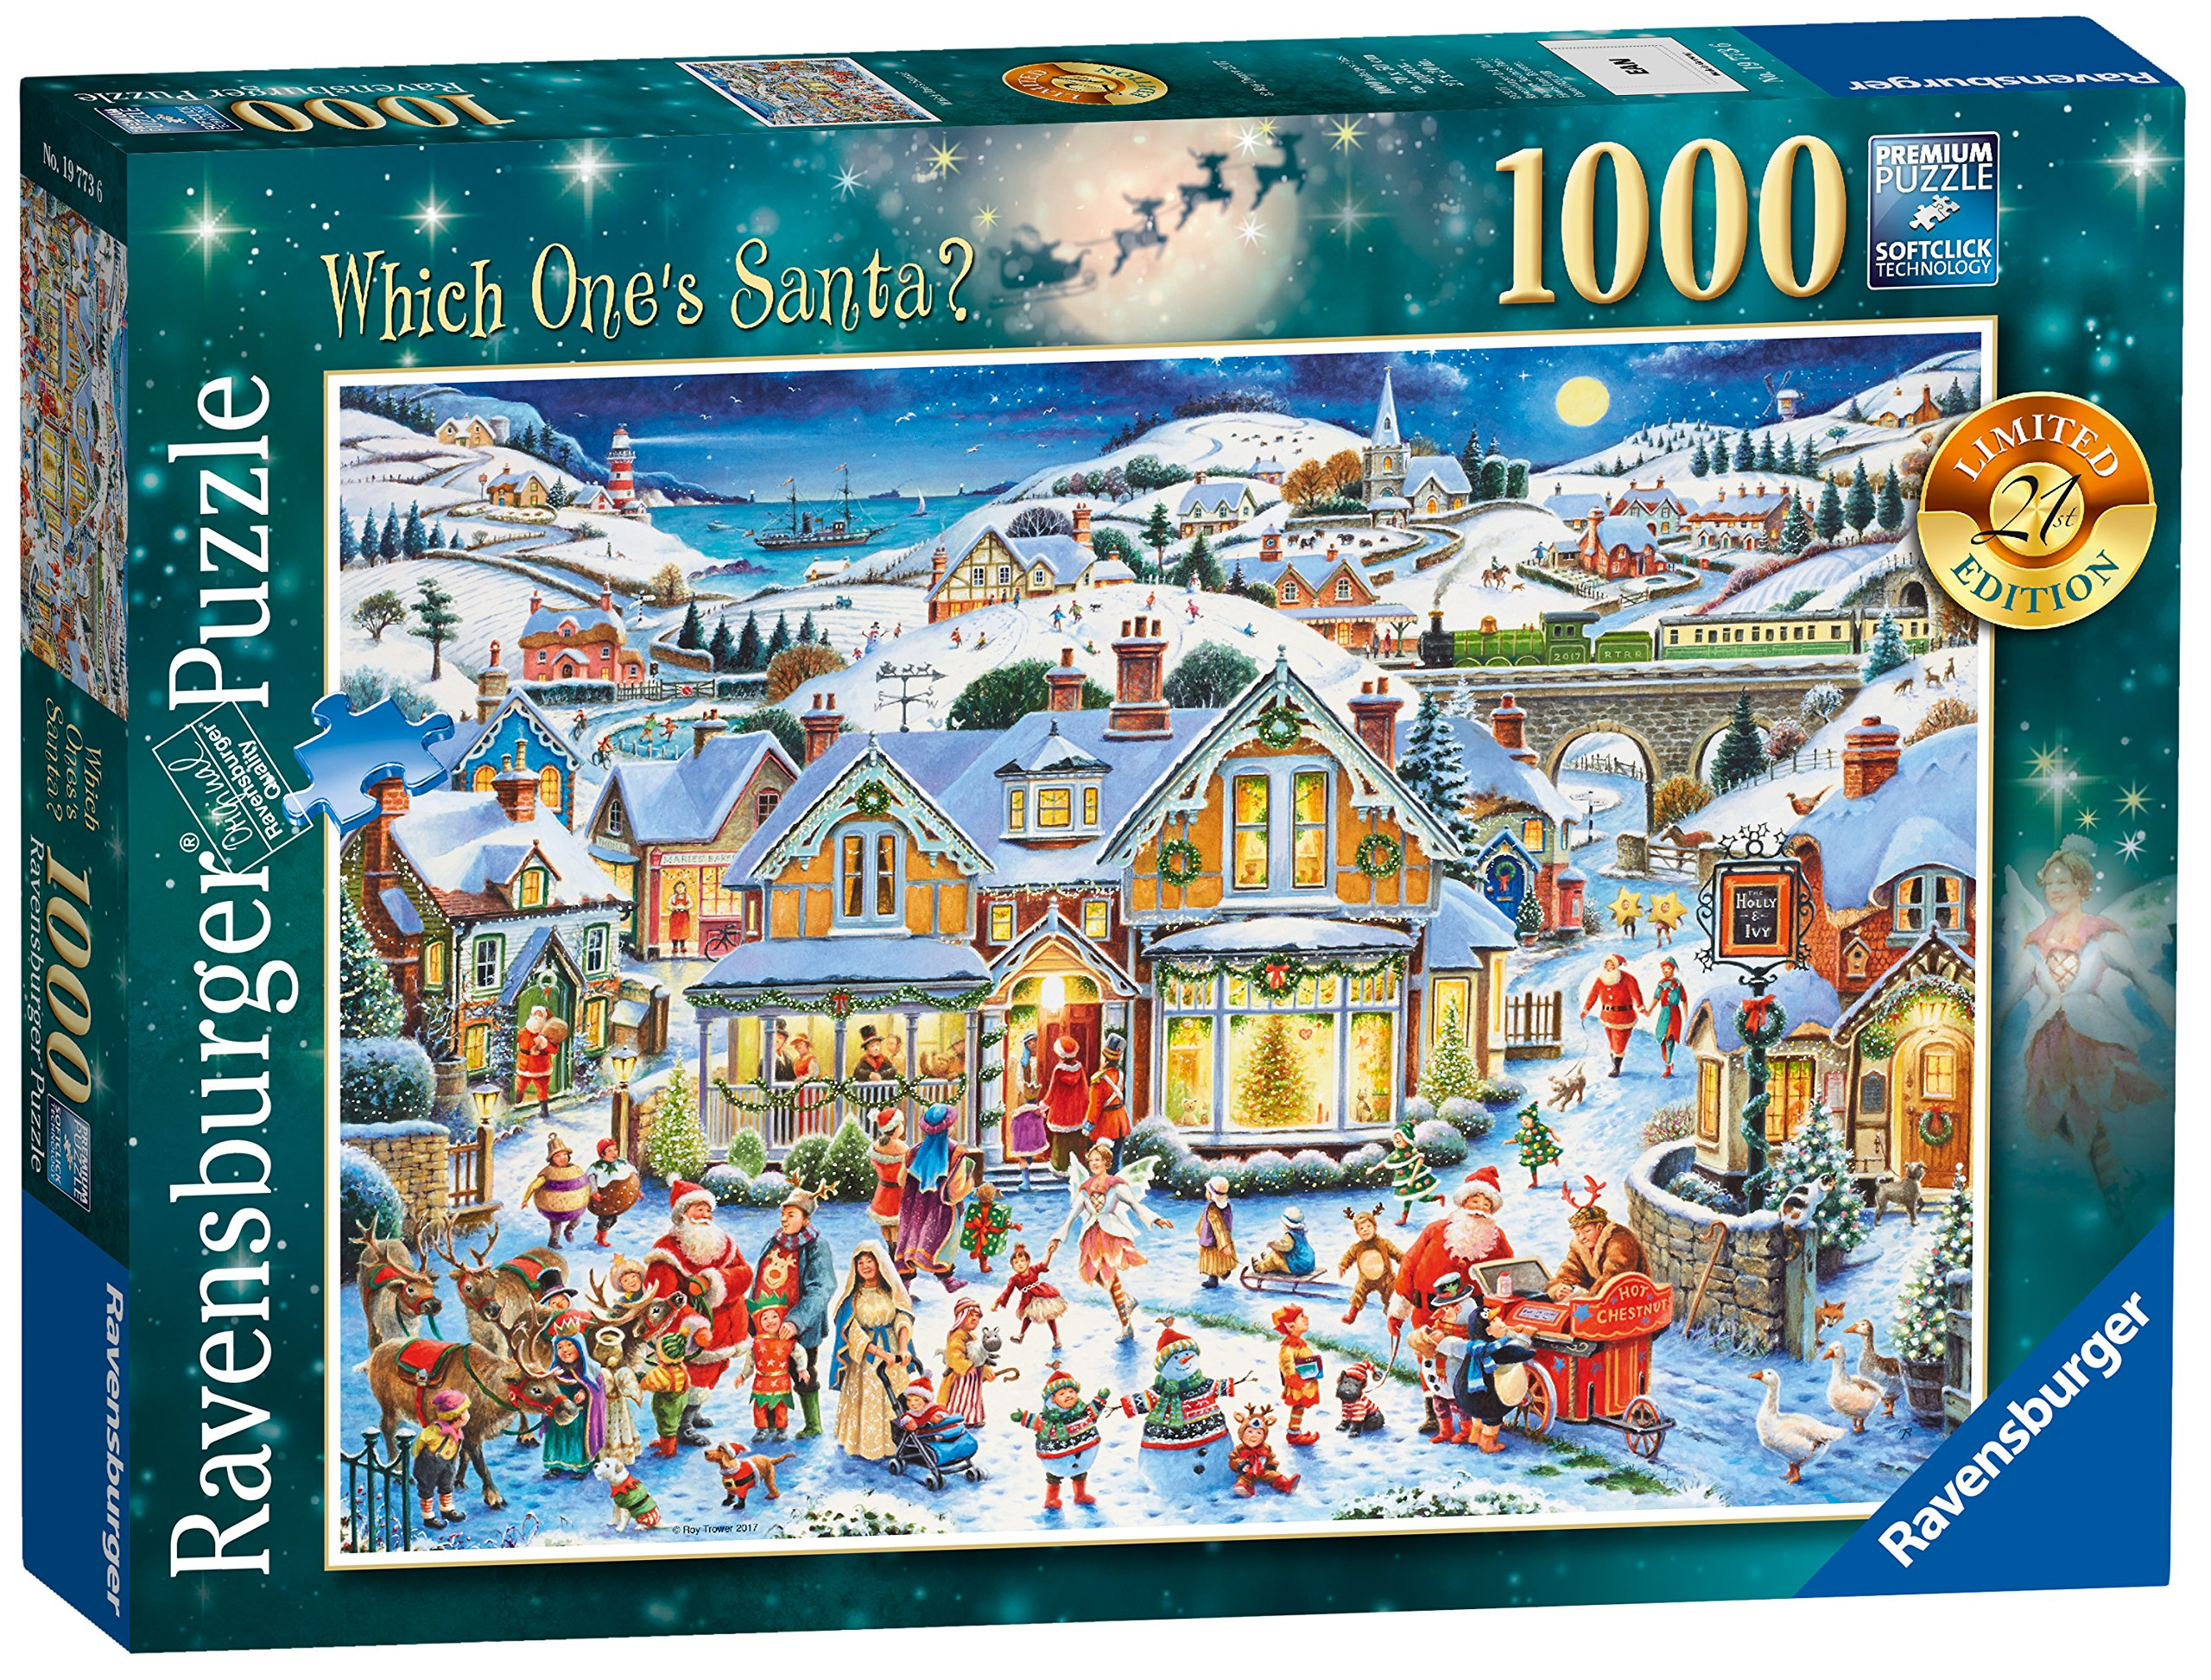 Ravensburger Which One's Santa? 1000pc 2017 Limited Edition Christmas Puzzle by Ravensburger